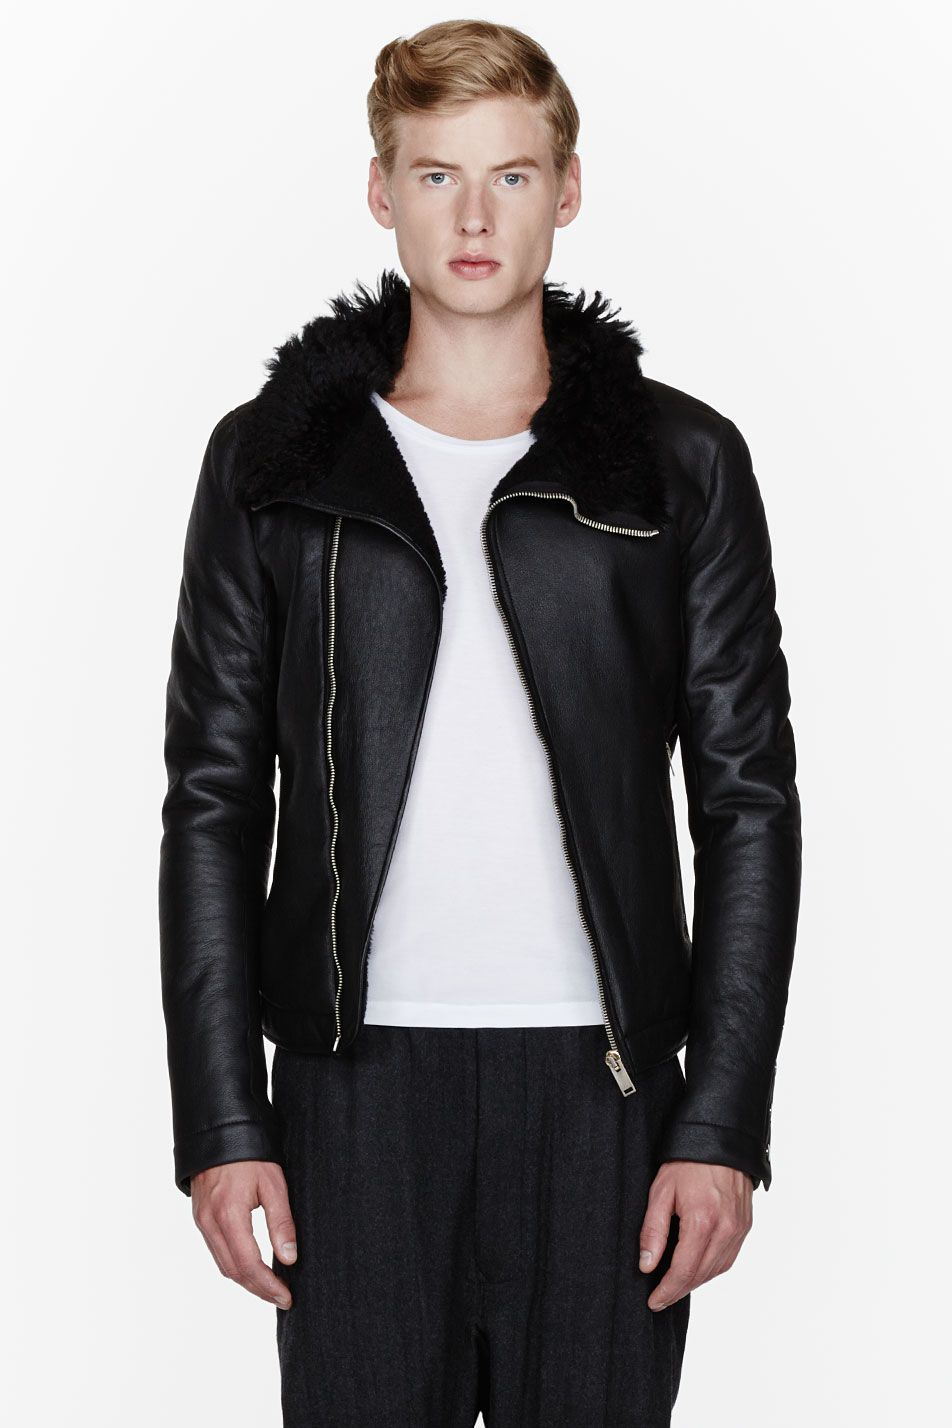 RICK OWENS // Black leather and shearling jacket 32232M032003 Long sleeve  thick leather jacket in